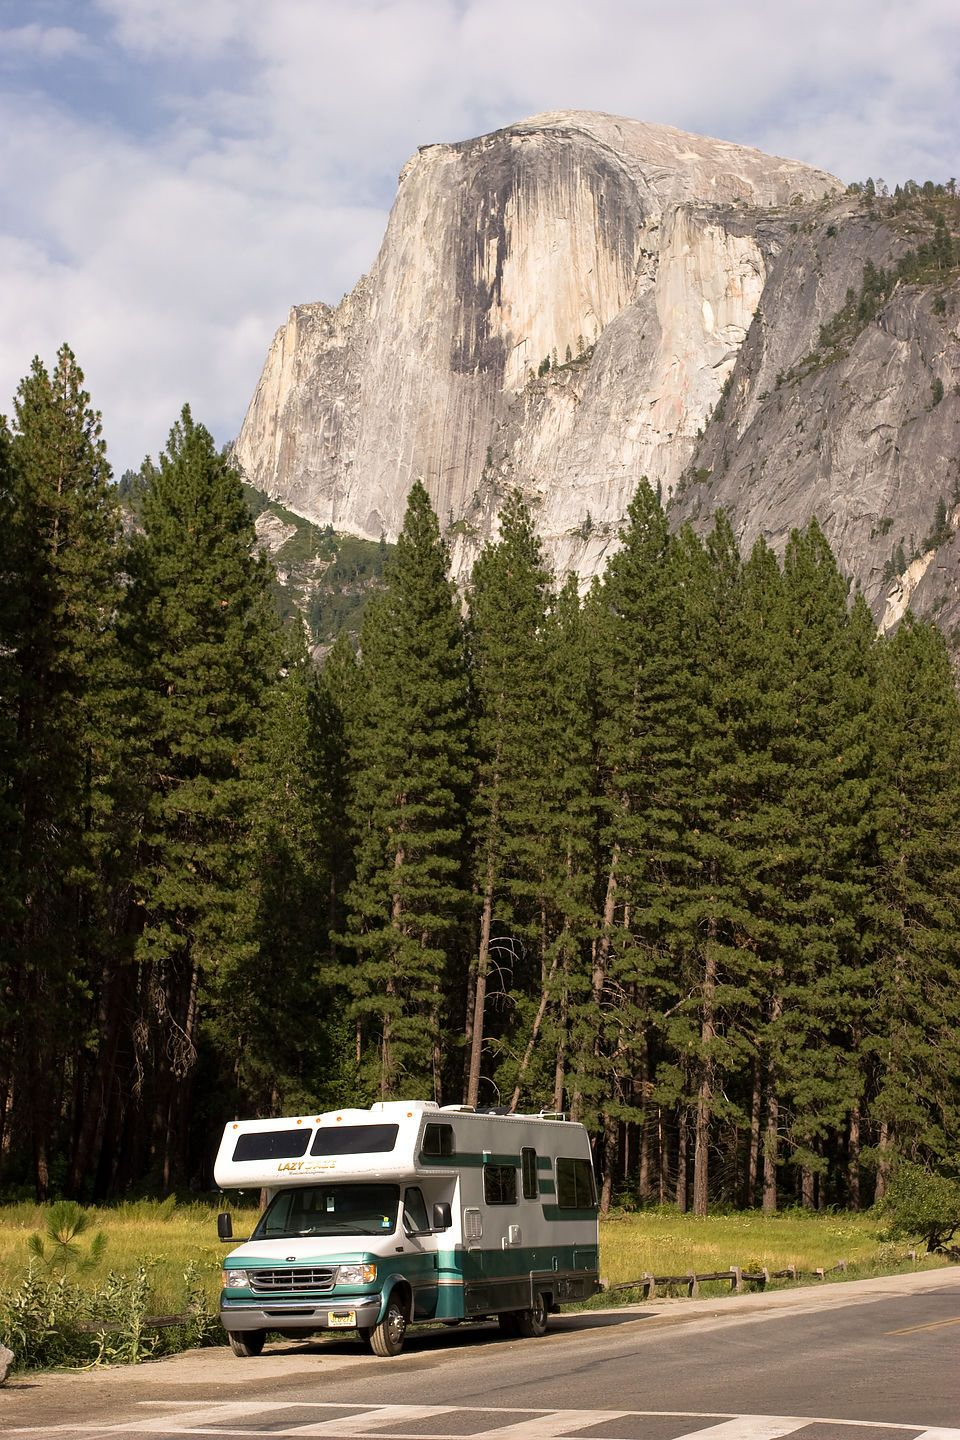 A Family Documents Its Rv Travels In Online Photo Albums Great Idea Cool Travel Pictures Summer Road Trip Trip Rv Road Trip